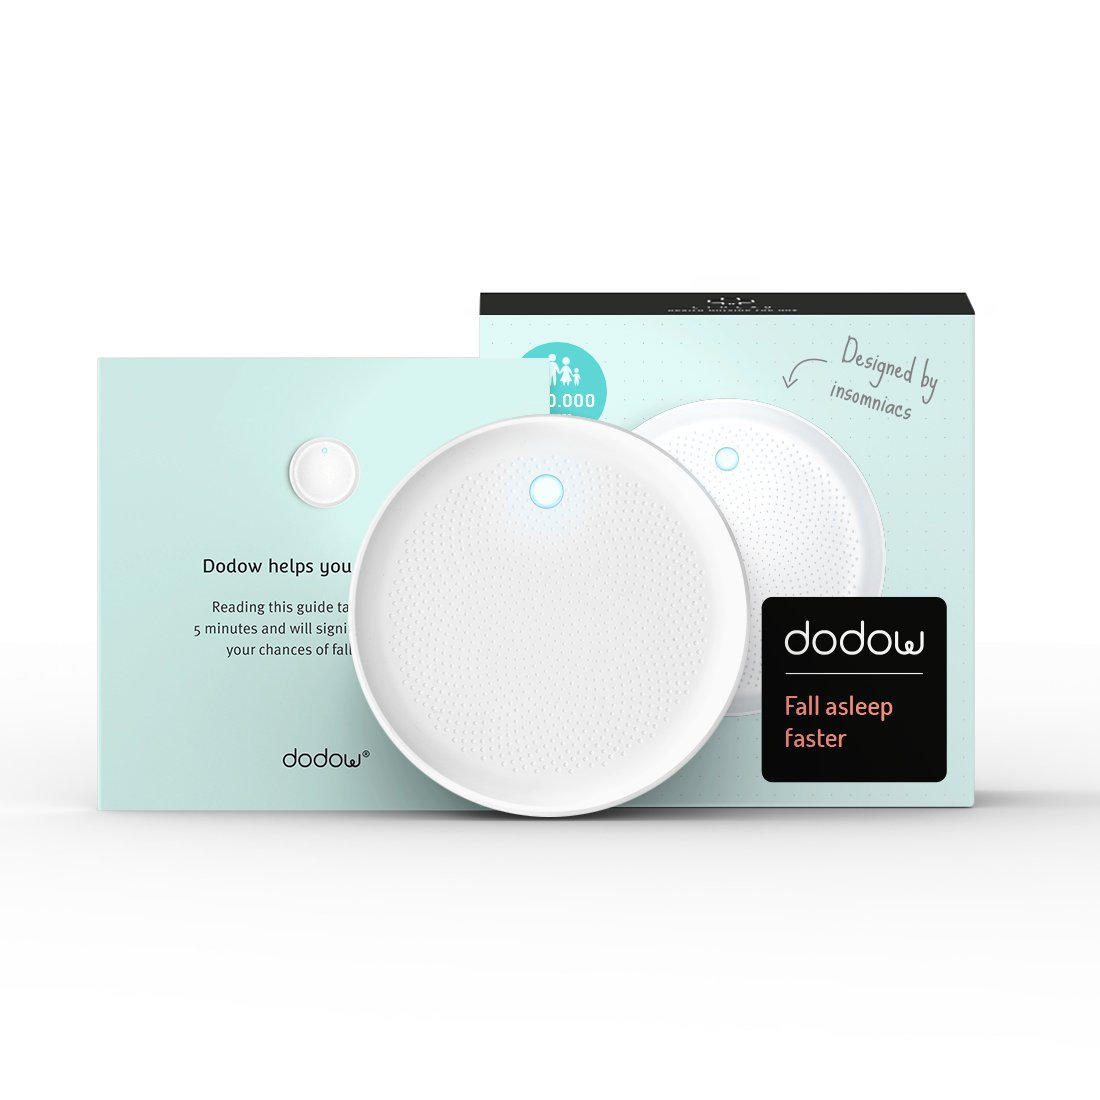 Dodow - Sleep Aid Device - More Than 500.000 Users are Falling Asleep Faster with Dodow! by DODOW